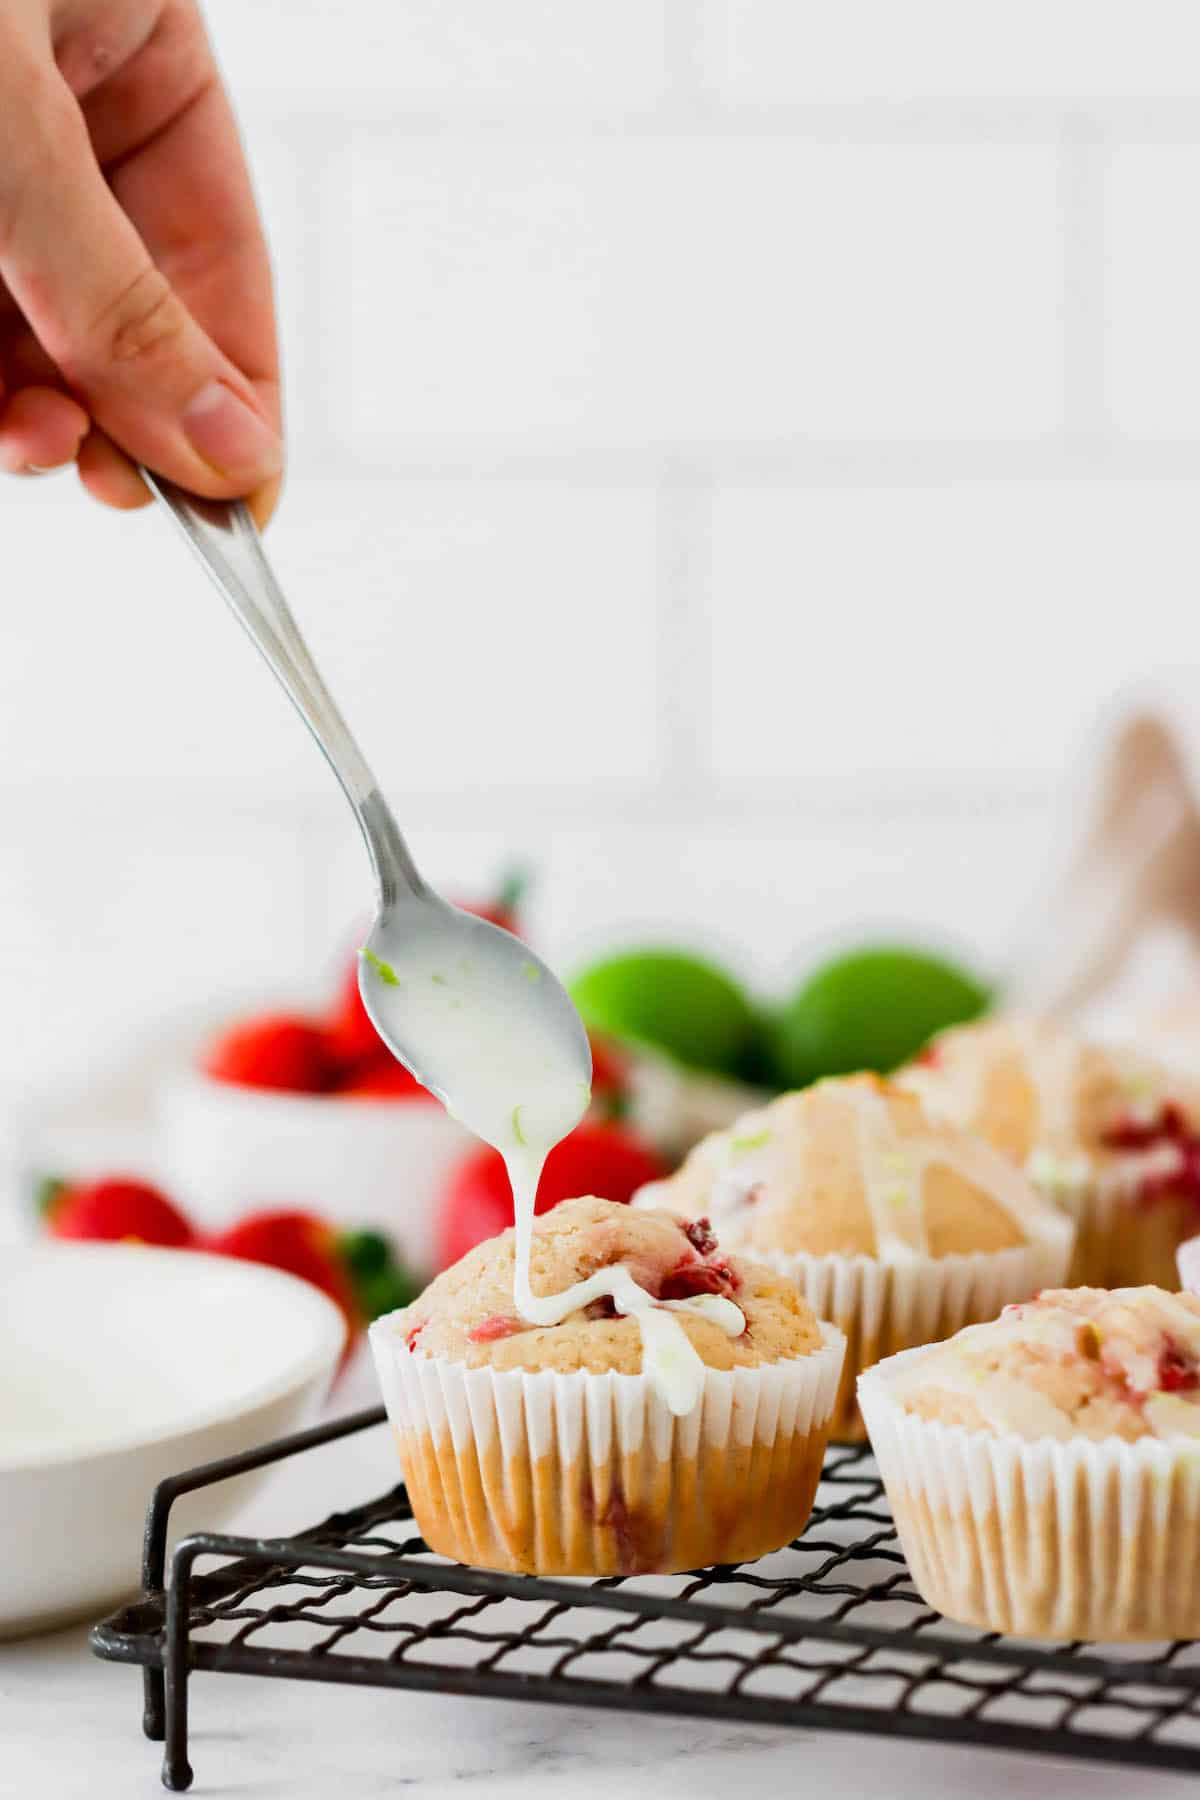 Lime glaze being drizzled over strawberry muffins